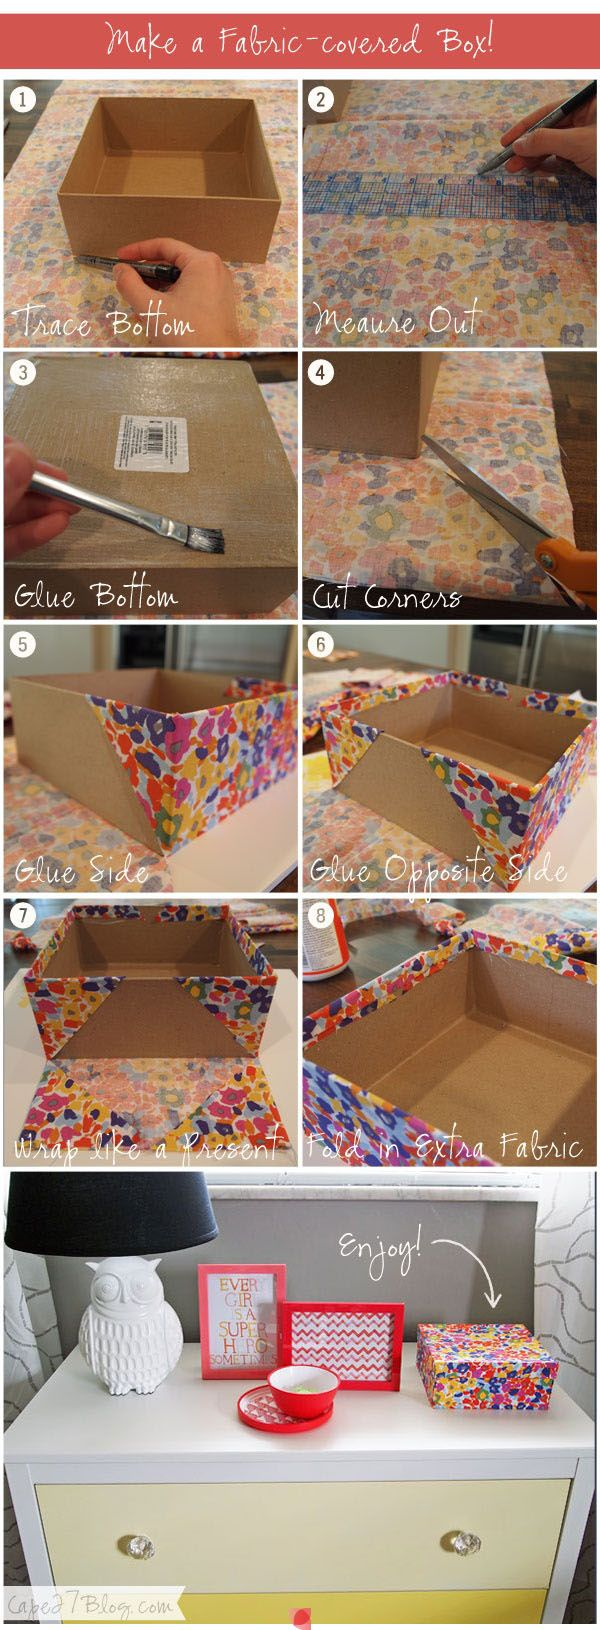 Make a fabric covered box - instructions included :)